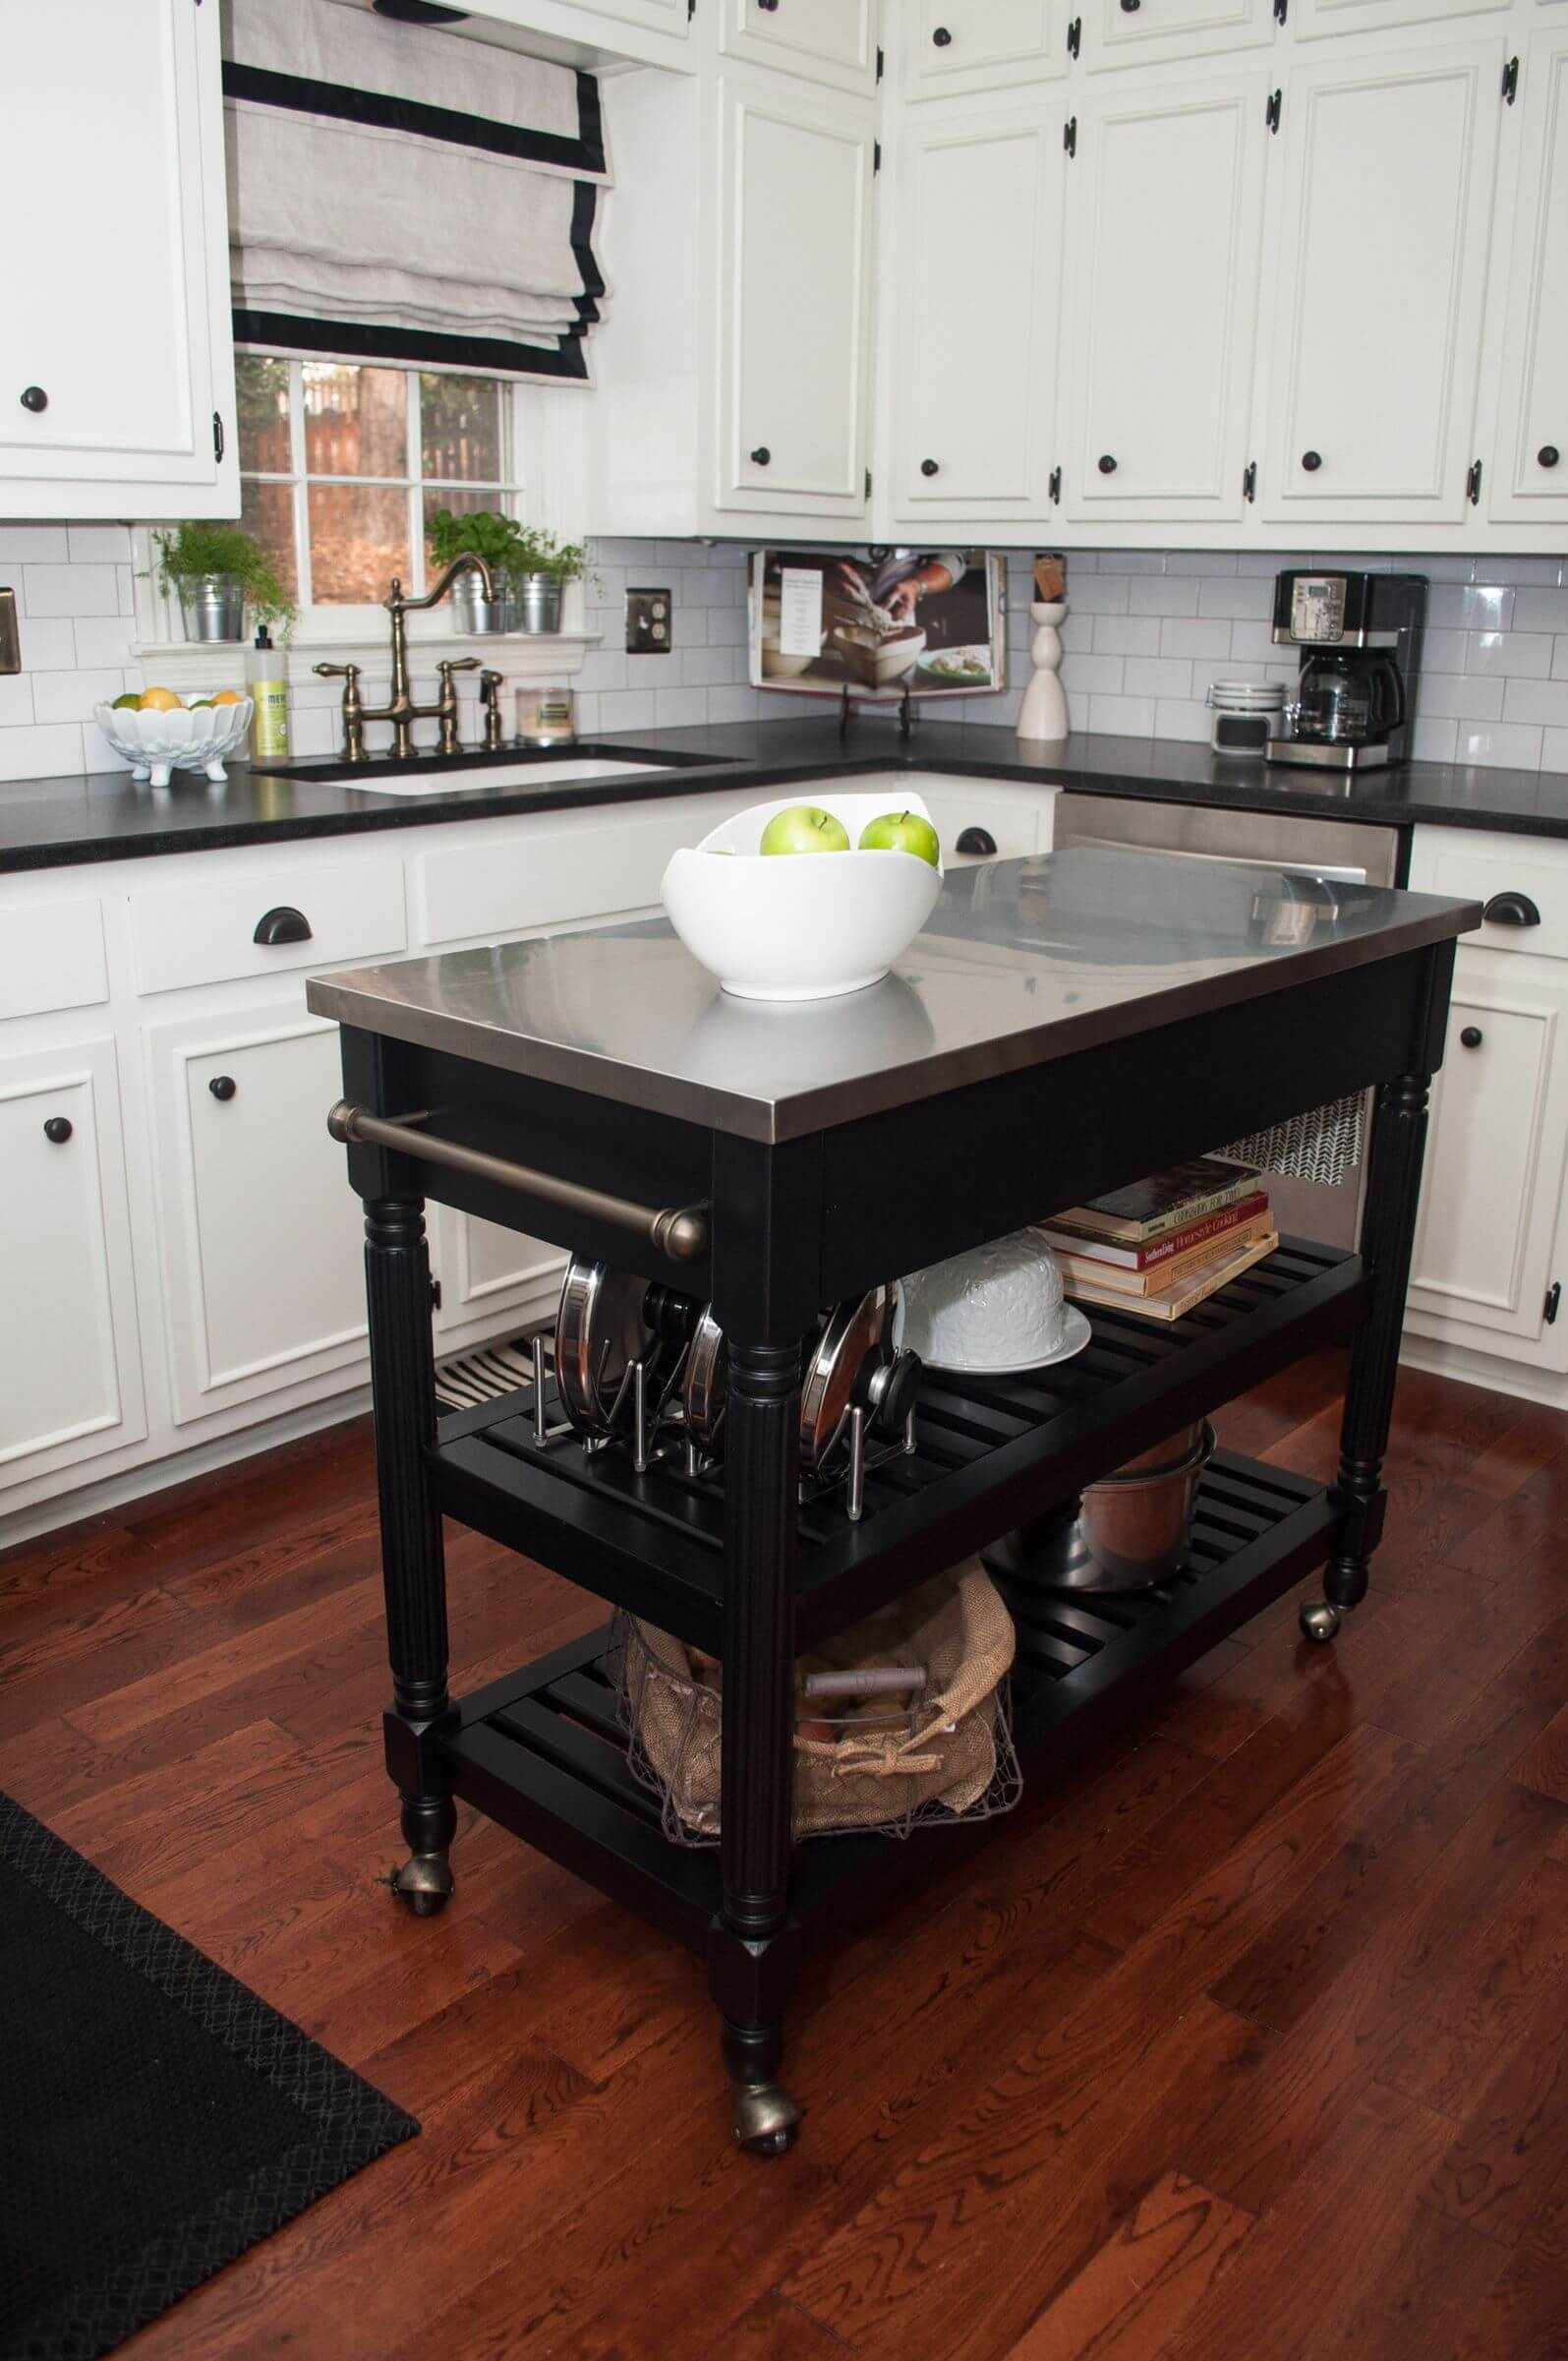 types of small kitchen islands on wheels wheels small kitchen